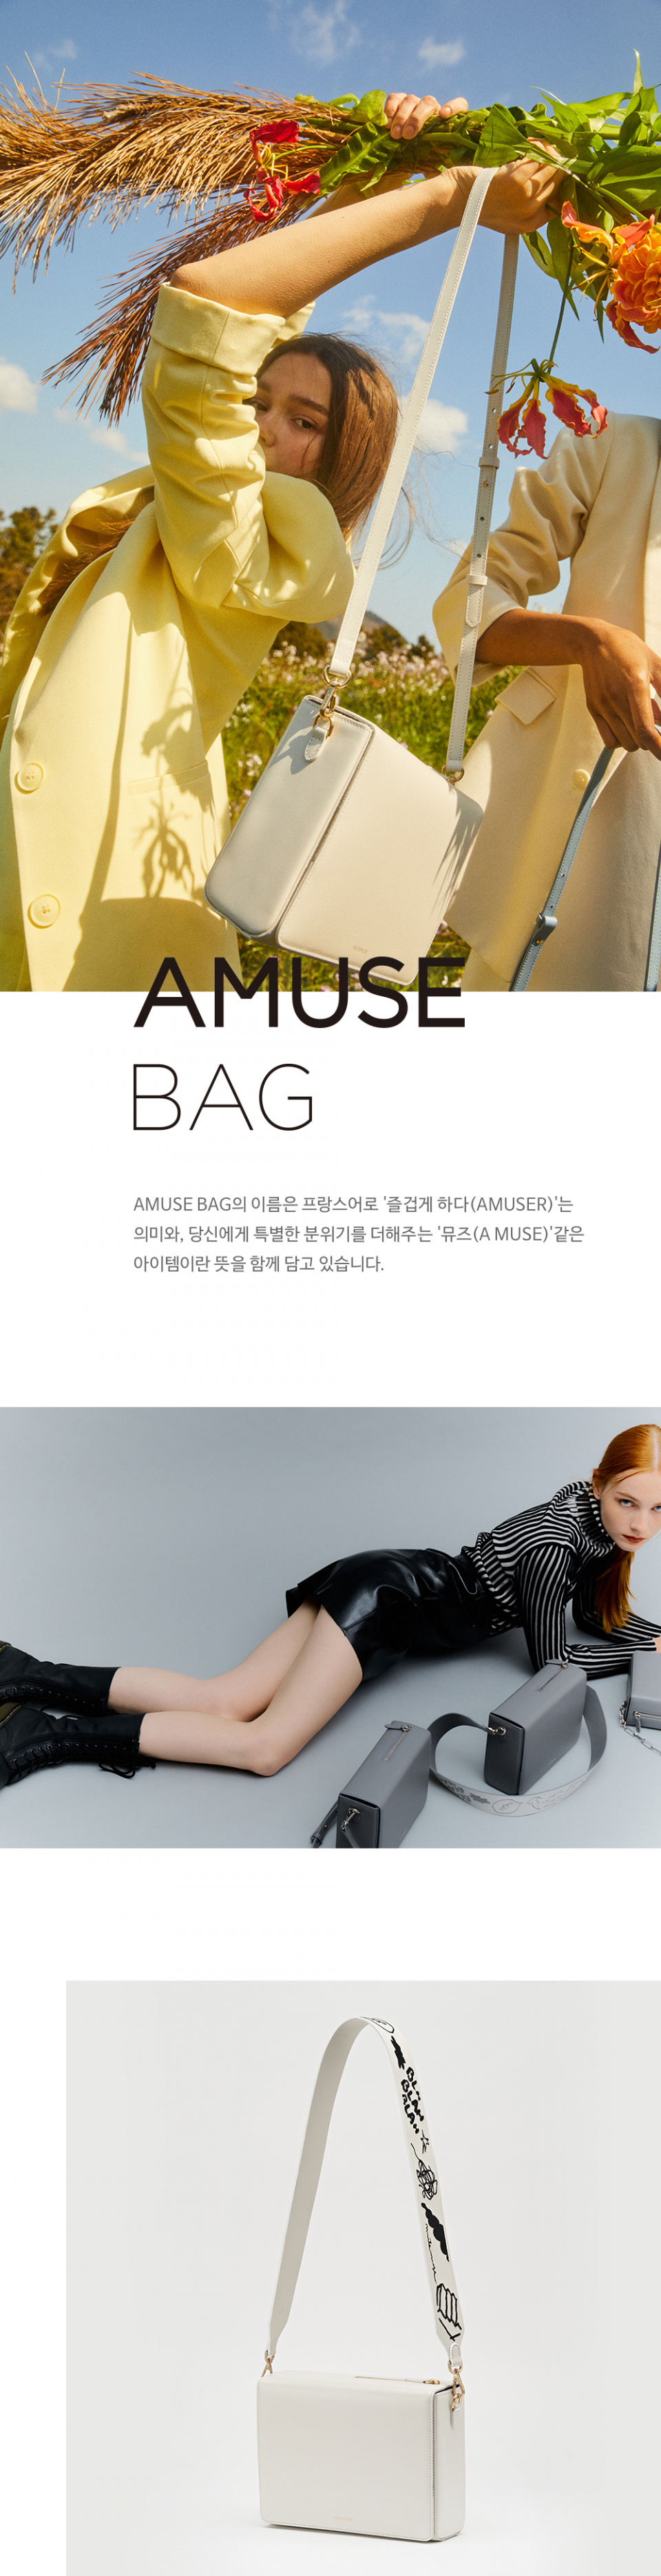 뮤트뮤즈(MUTEMUSE) AMUSE Bag (White) + CHIT-CHAT Artwork Strap (White)